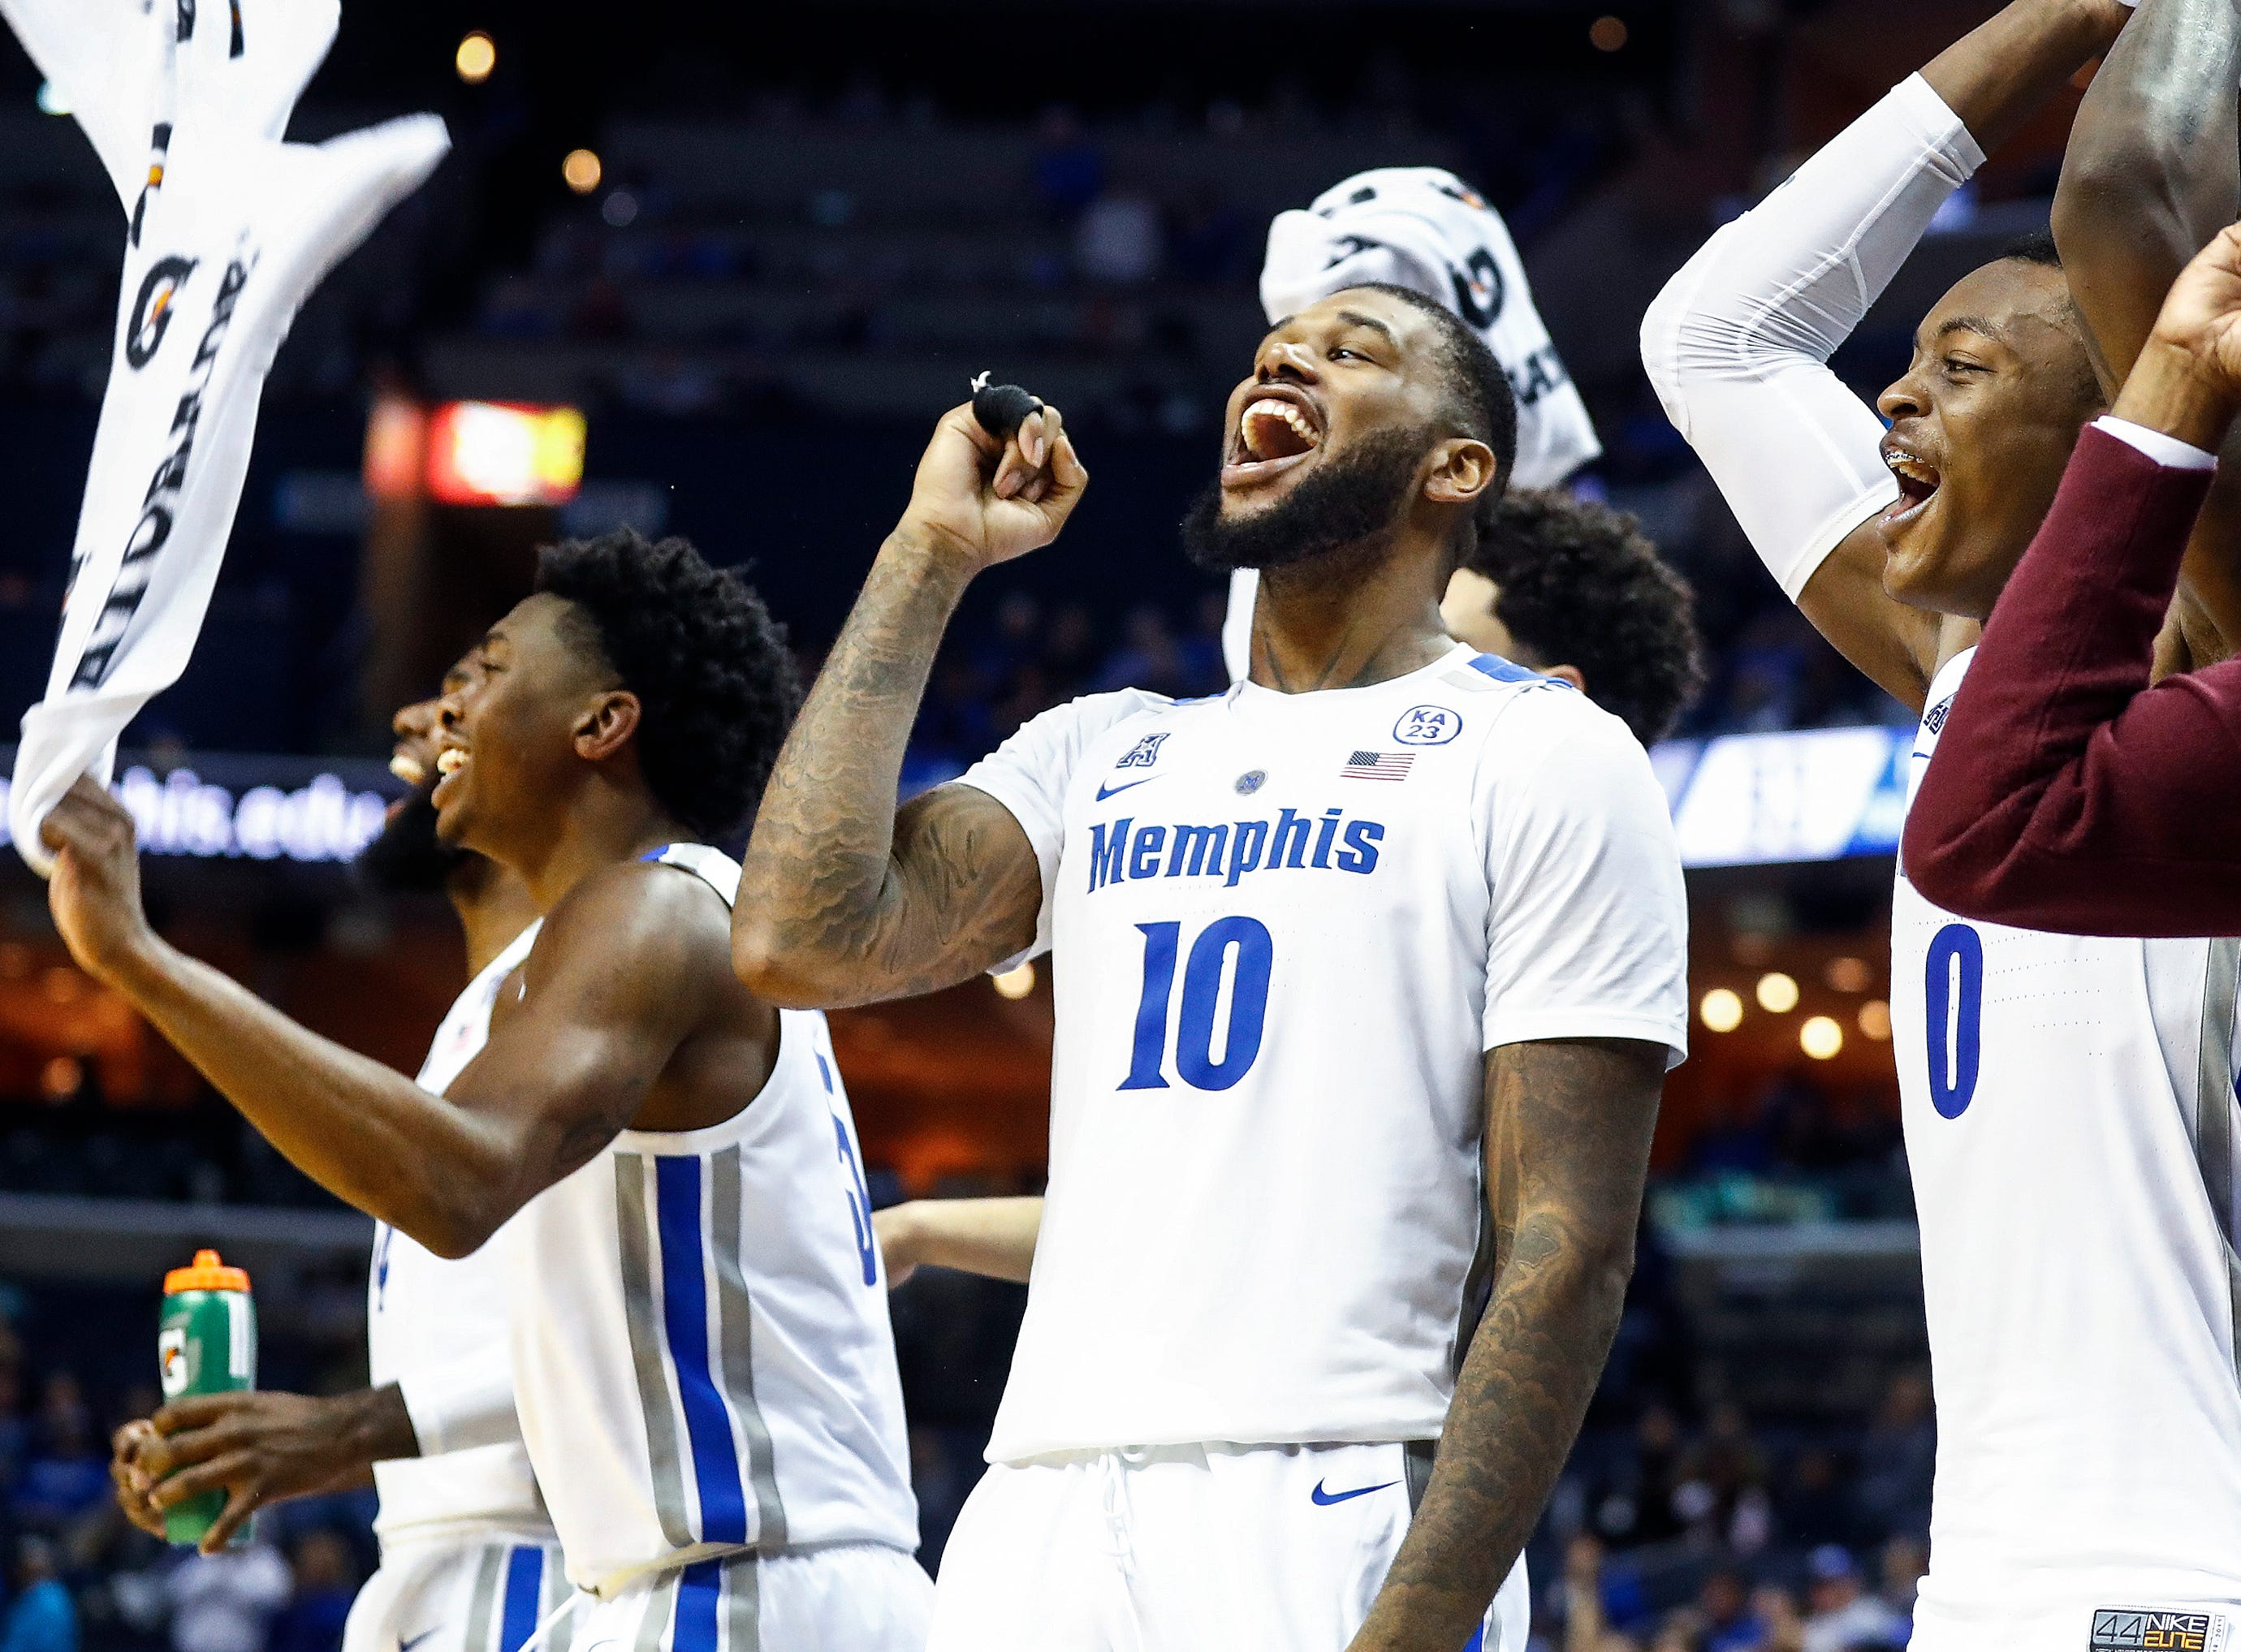 Memphis' Mike Parks Jr. celebrates on the bench during action against UAB at the FedExFourm in Memphis, Tenn., Saturday December 8, 2018